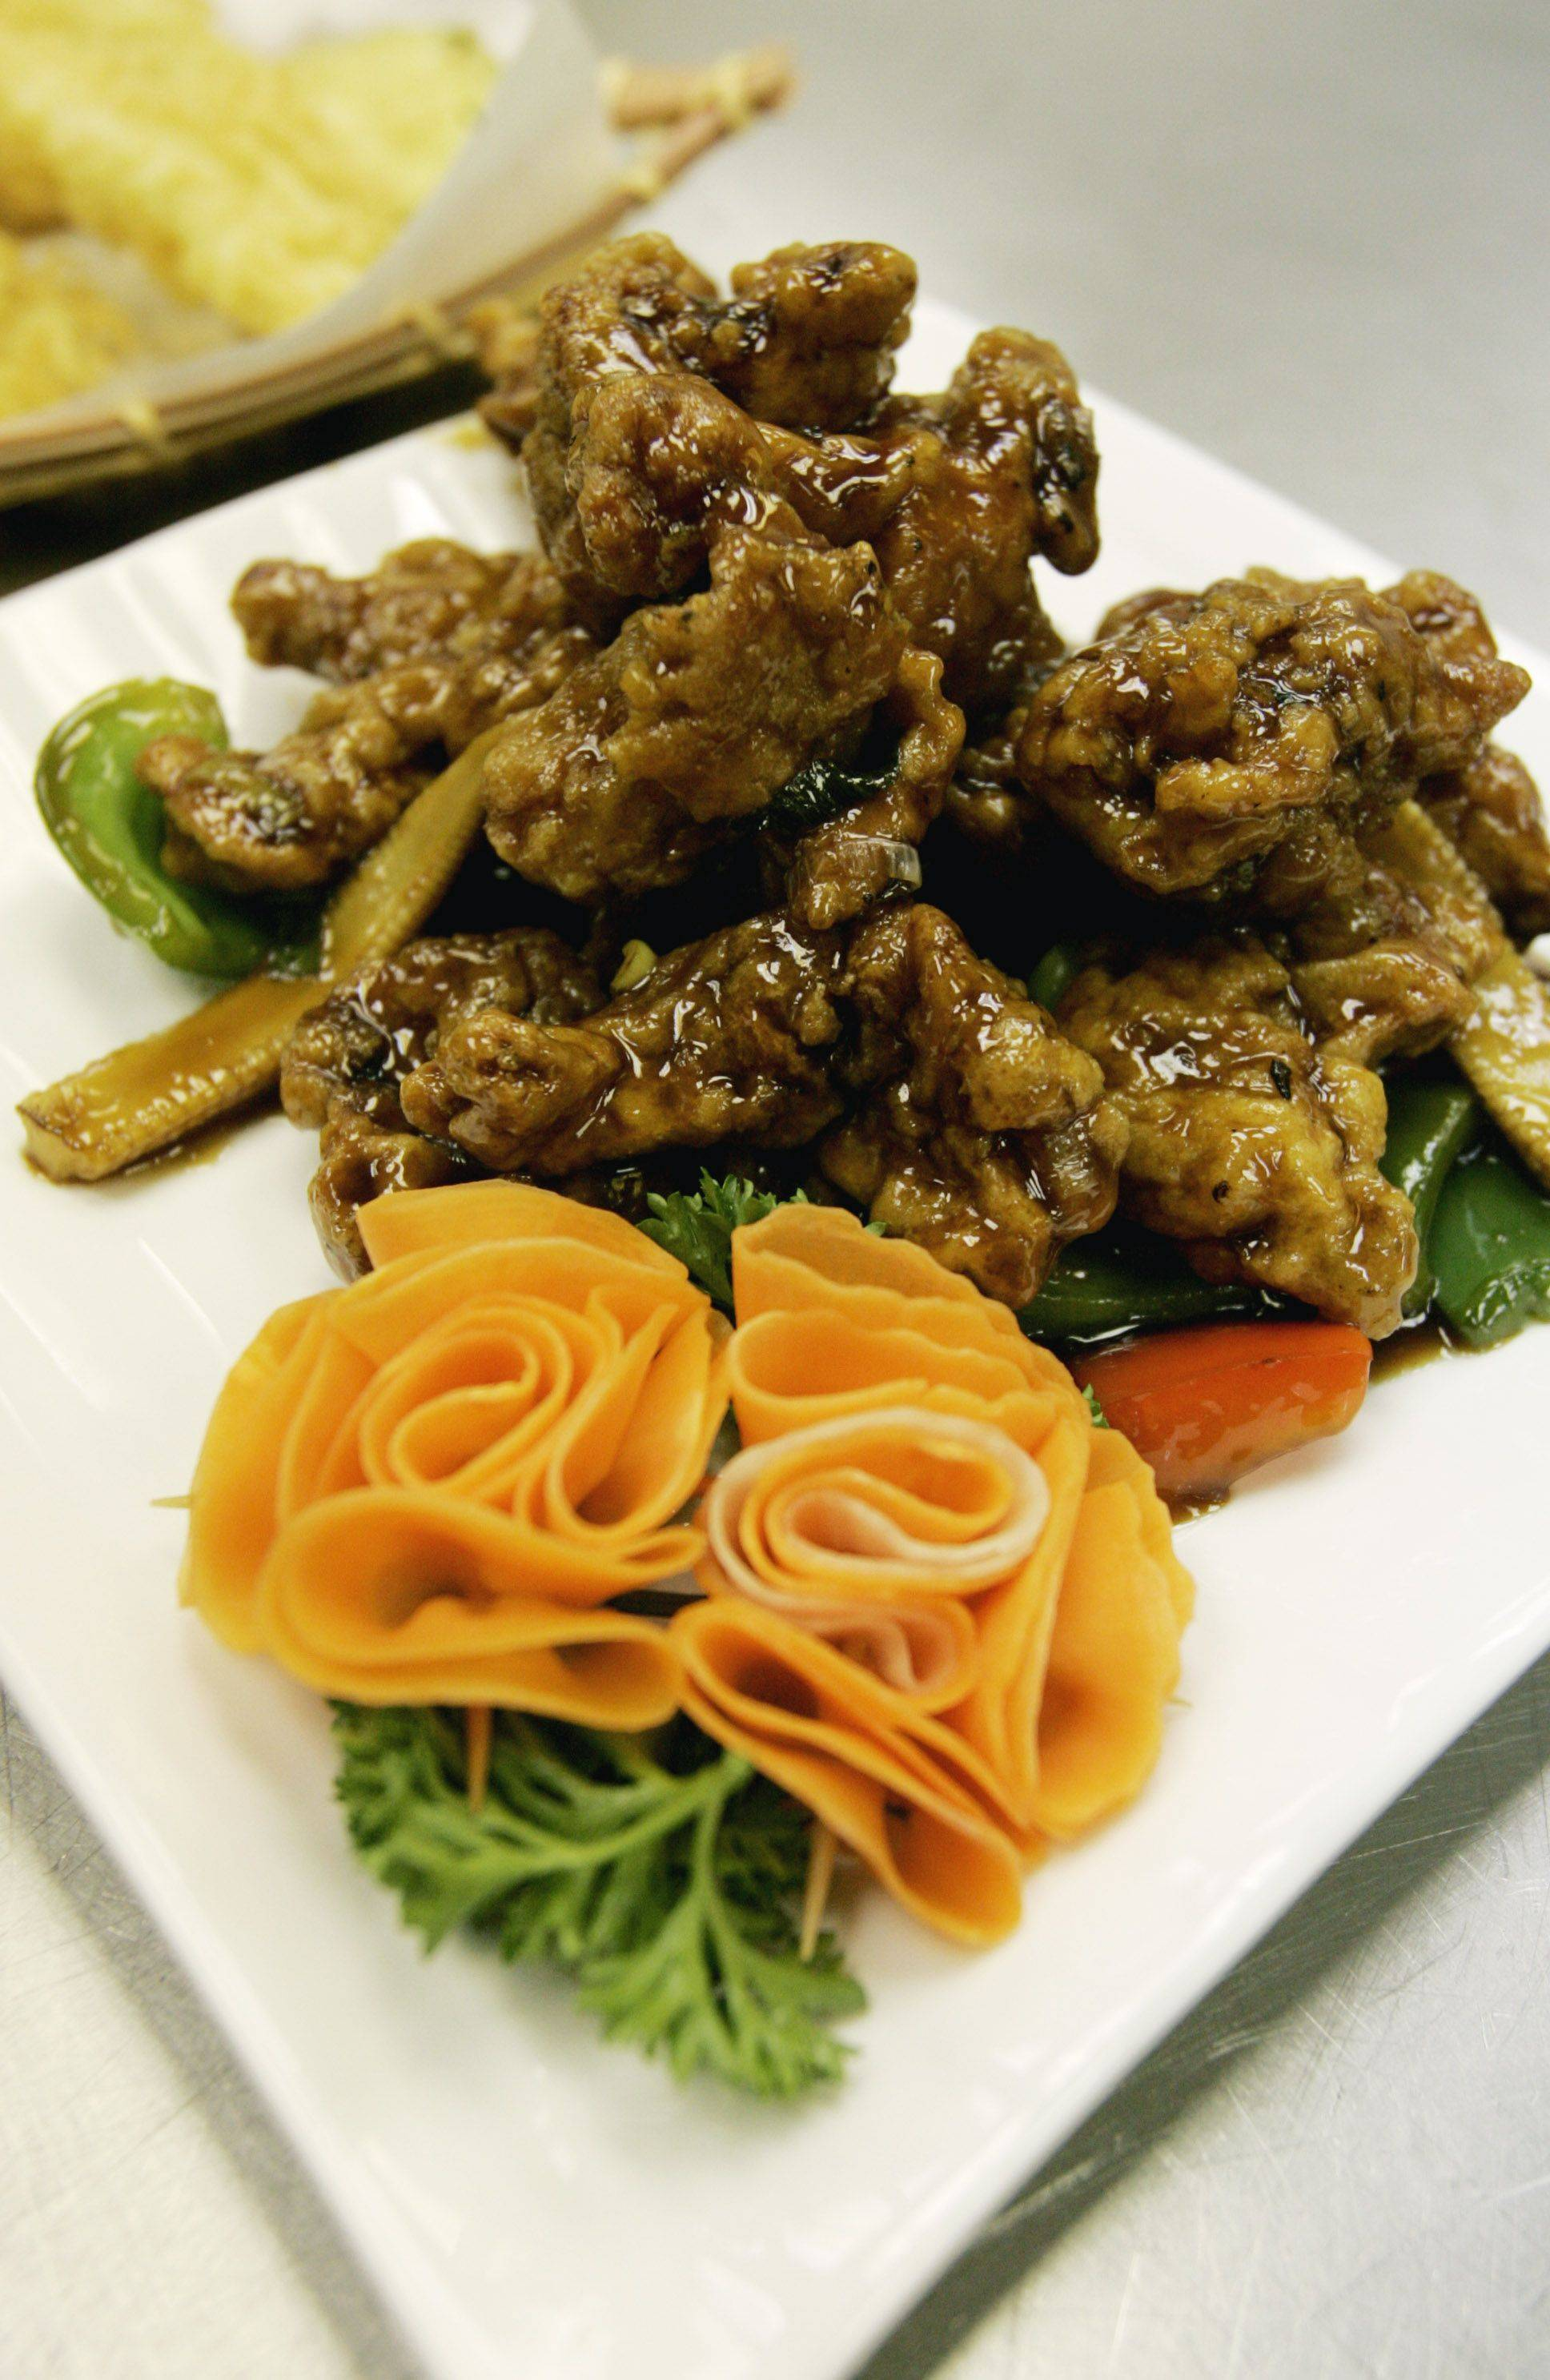 General Tso's chicken is a customer favorite at Lu's Sushi and Chinese in Glen Ellyn.